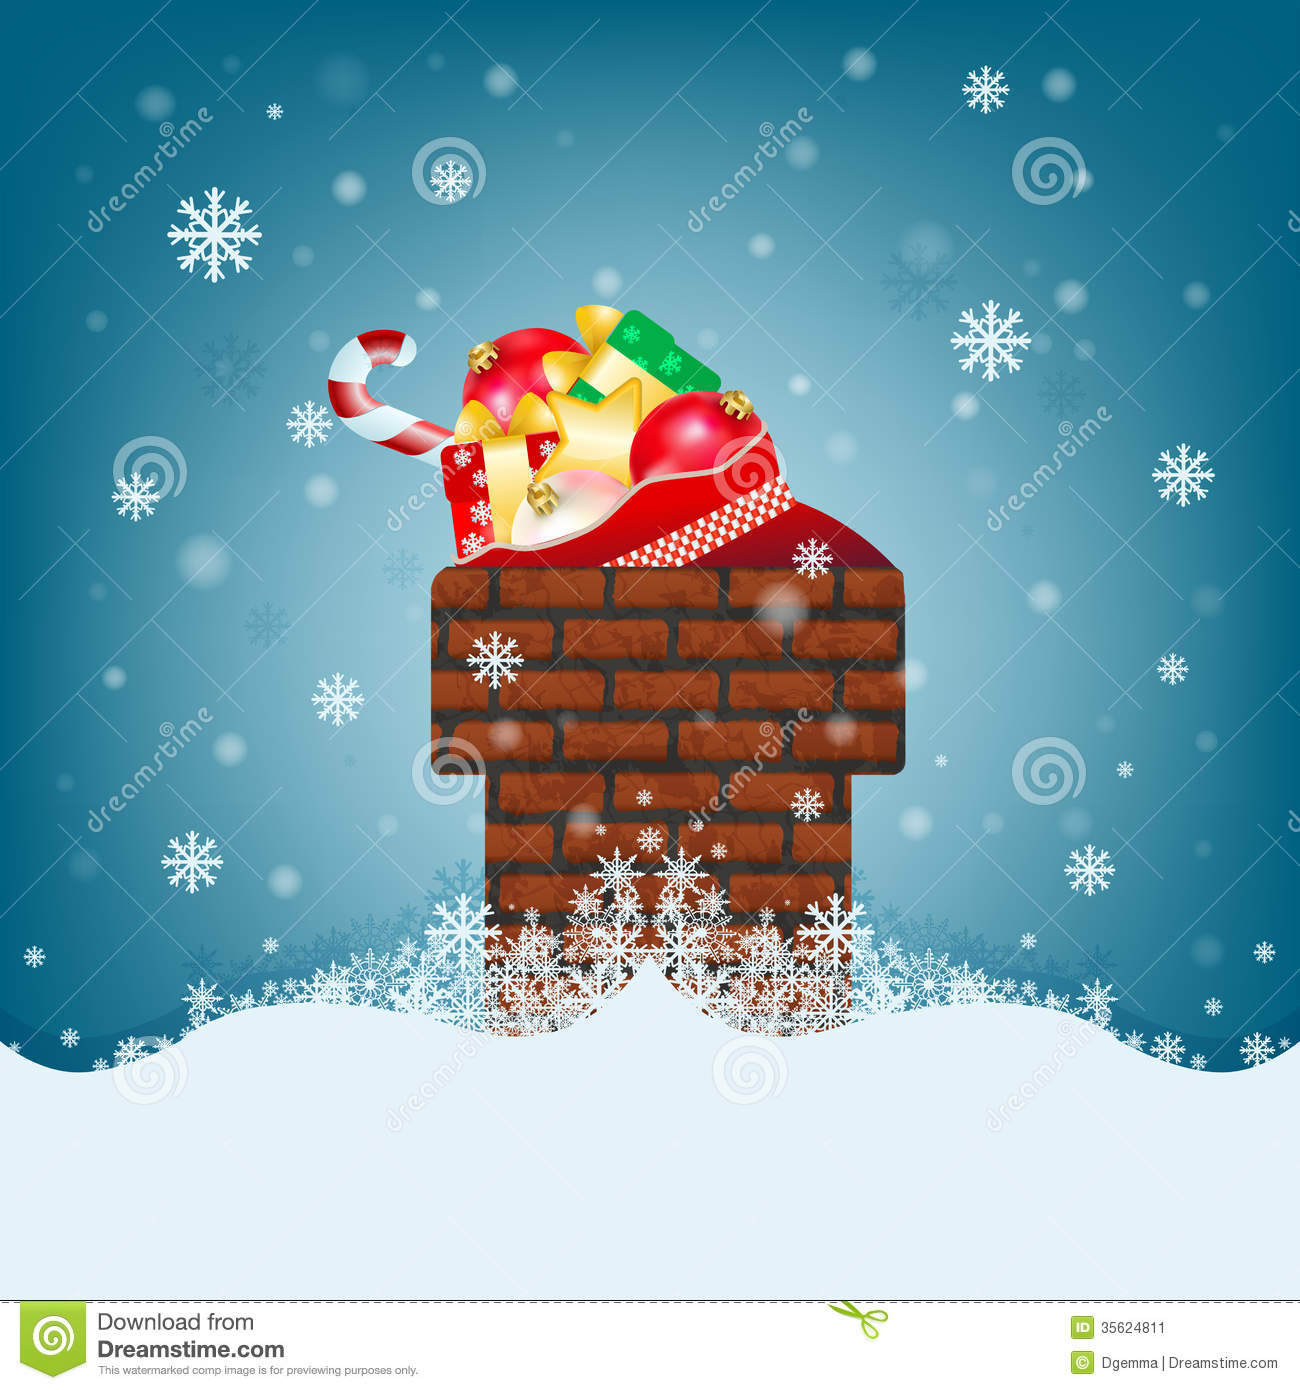 Christmas Card With Chimney And Big Bags Of Gifts Stock